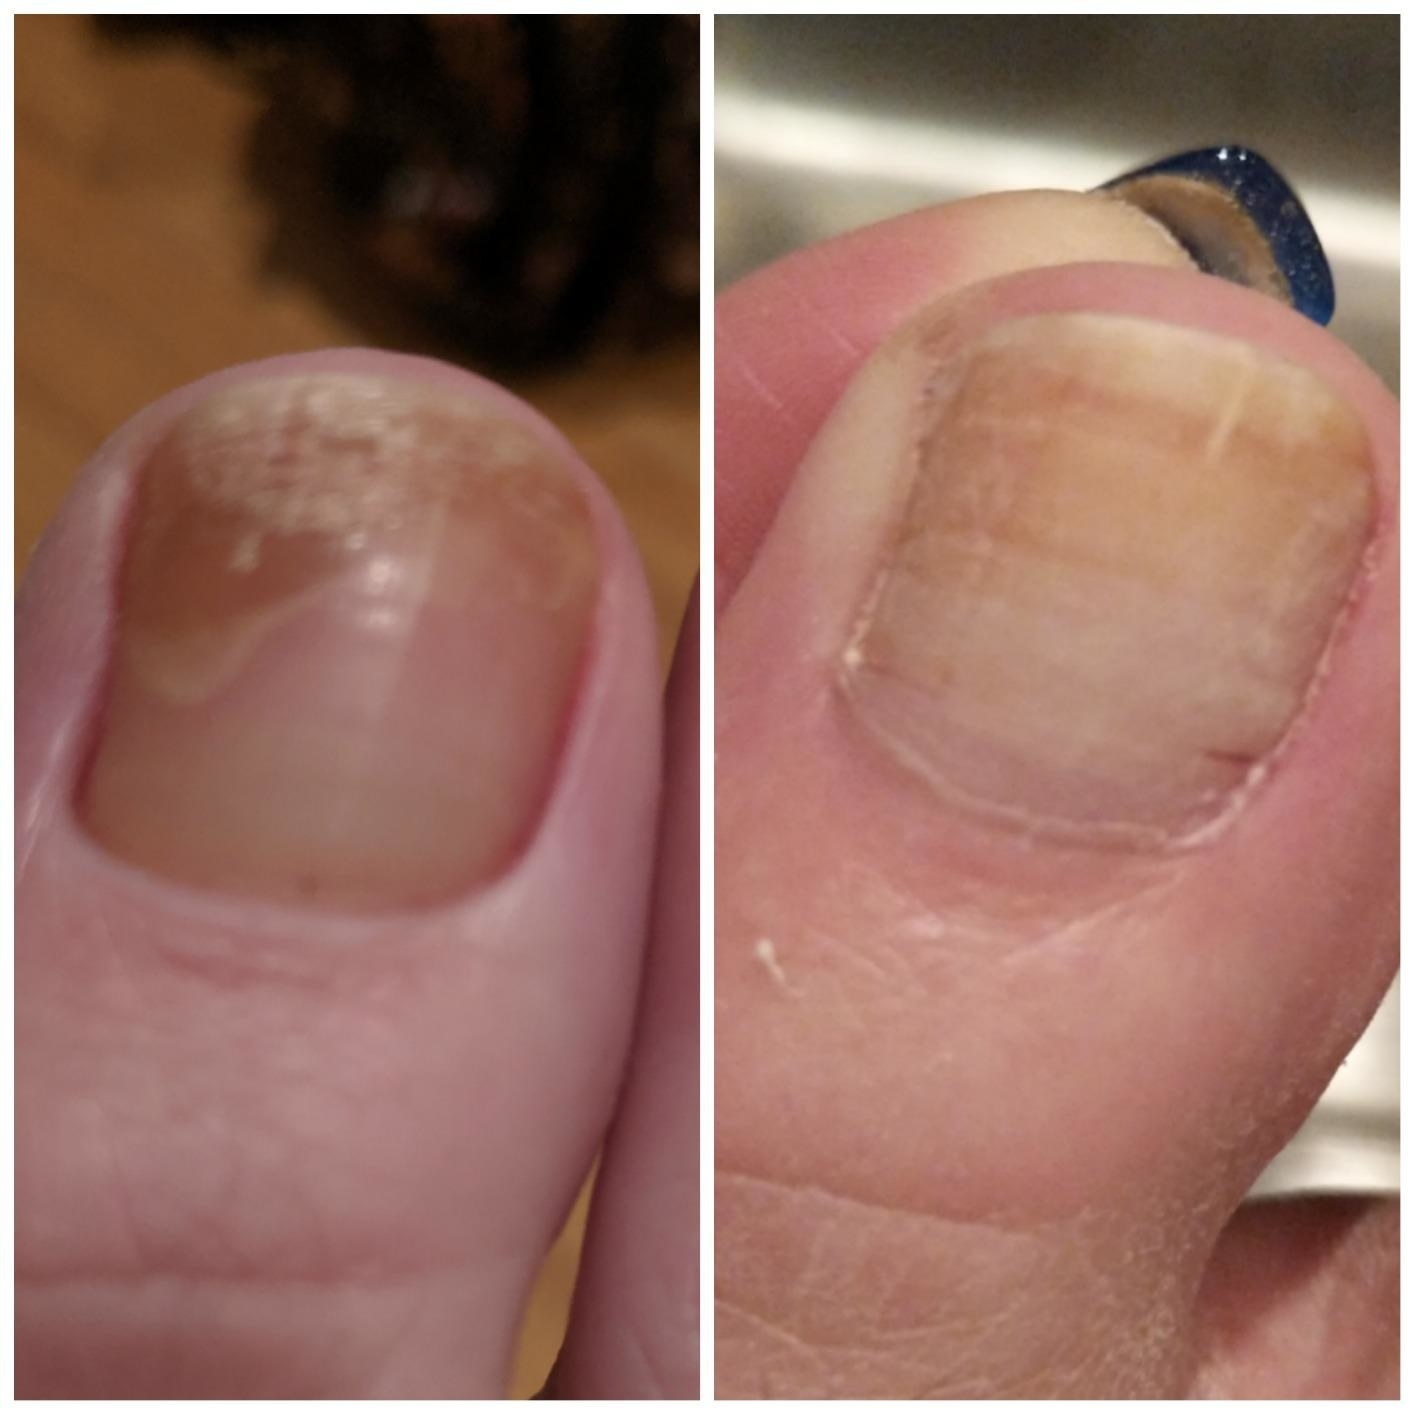 Before and after of reviewer's toenail showing the pen got rid of their toenail fungus